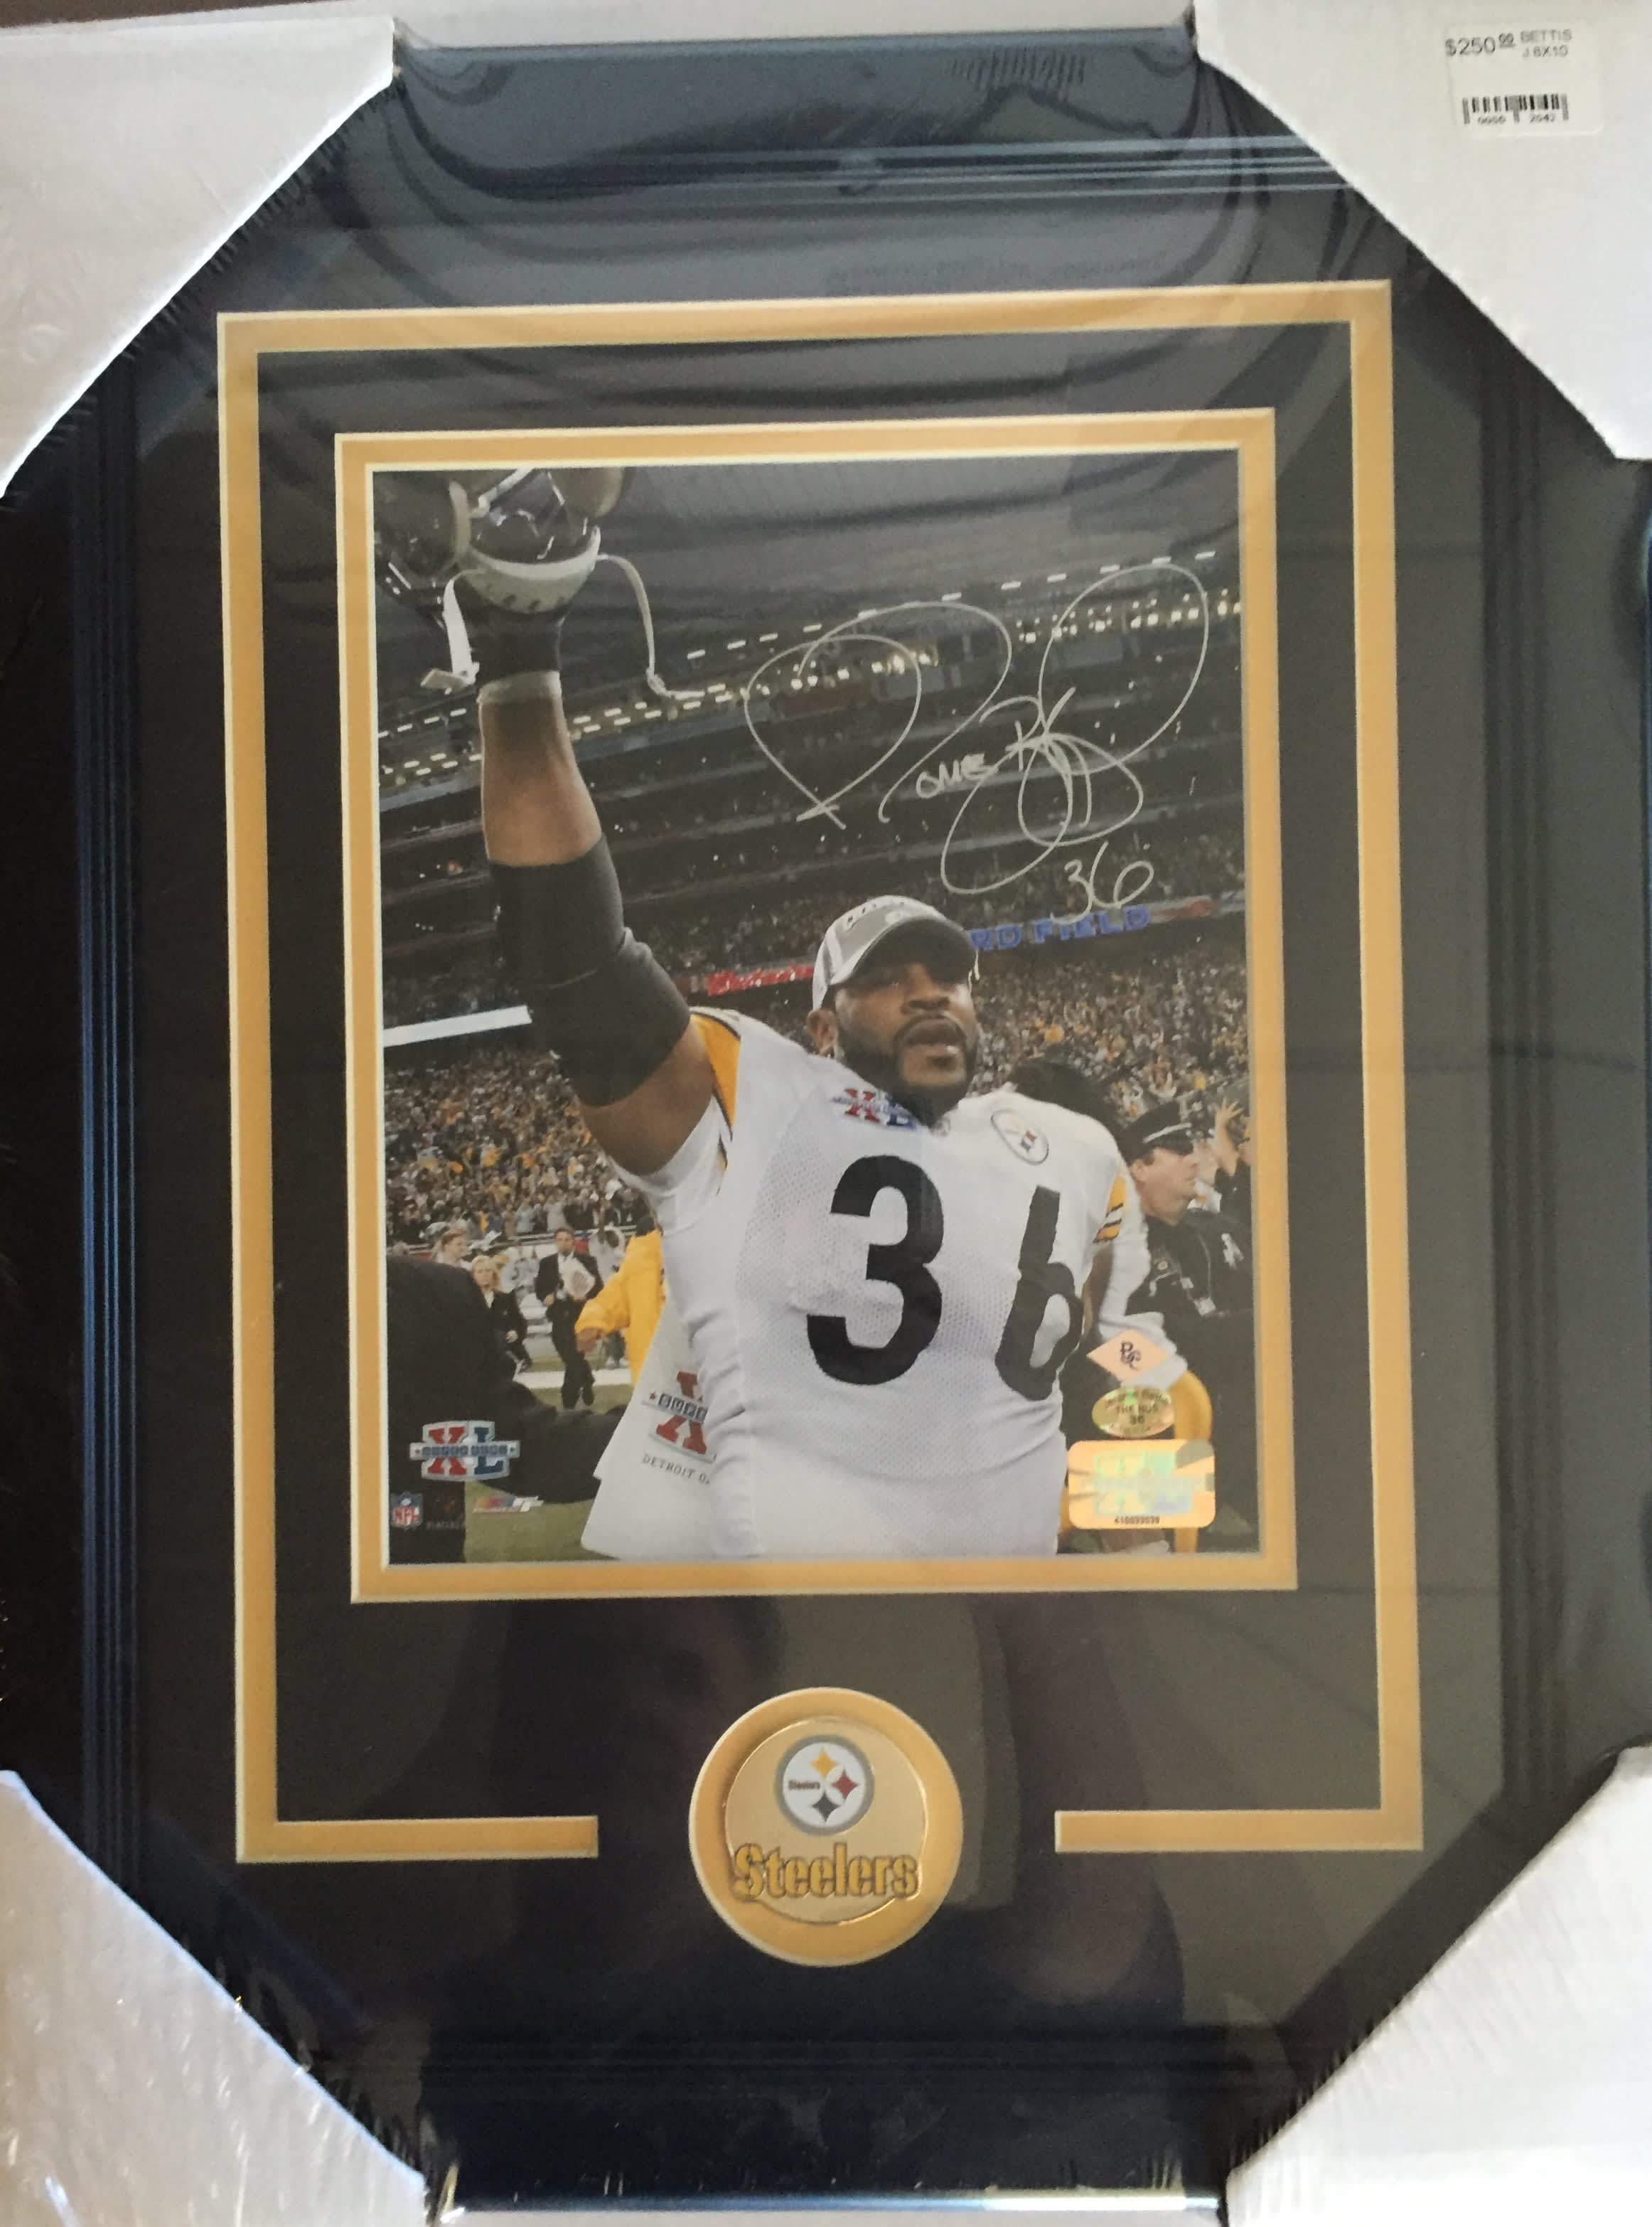 4cd2a7445e0 JEROME BETTIS AUTOGRAPHED 8X10 FRAMED PHOTO - Philly Man Cave